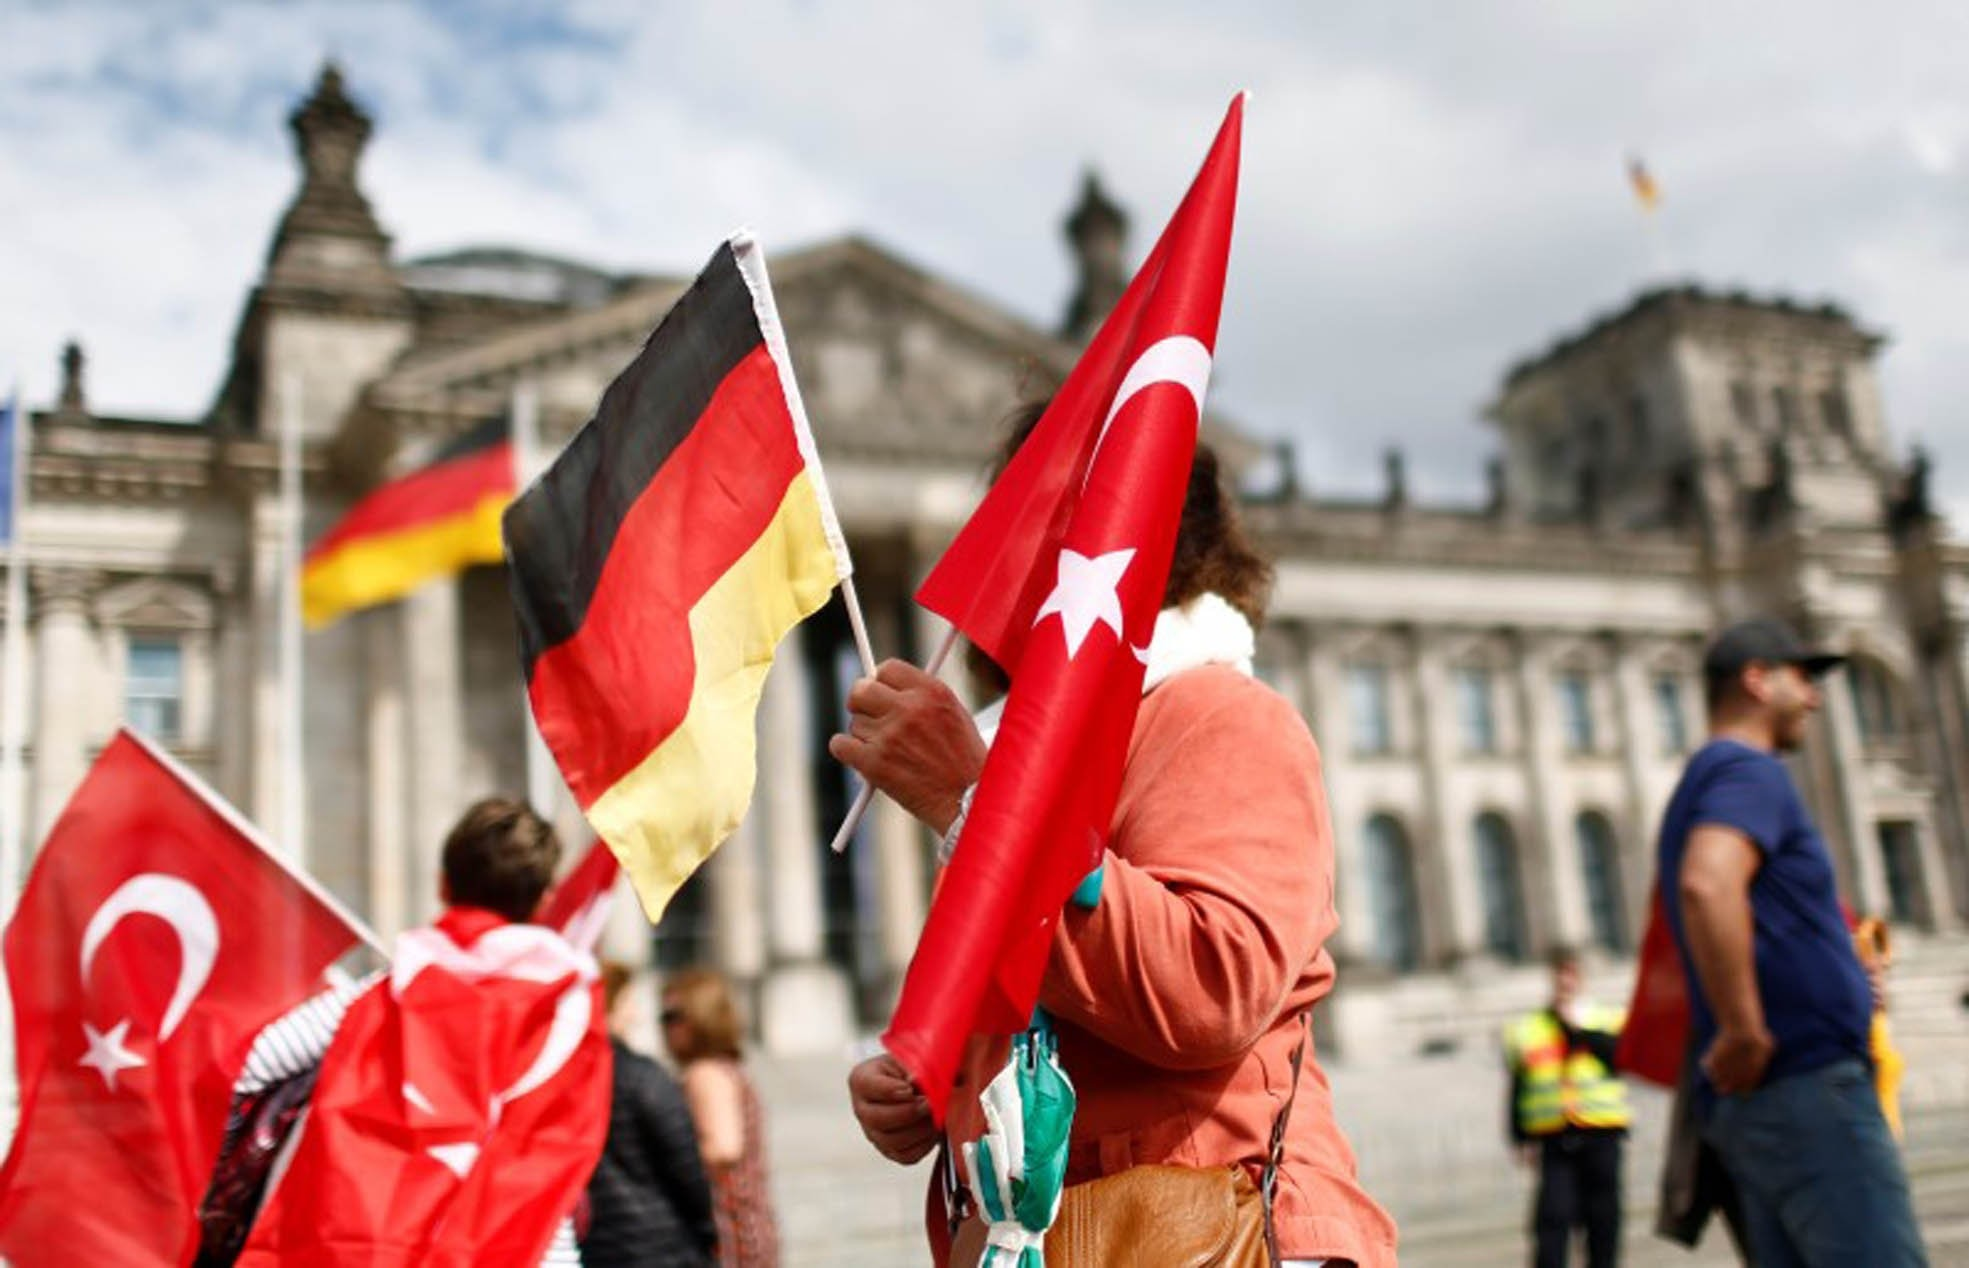 A woman holds Turkish and German flags in front of the Reichstag building, which houses the German Parliament, Berlin, June 1, 2016.